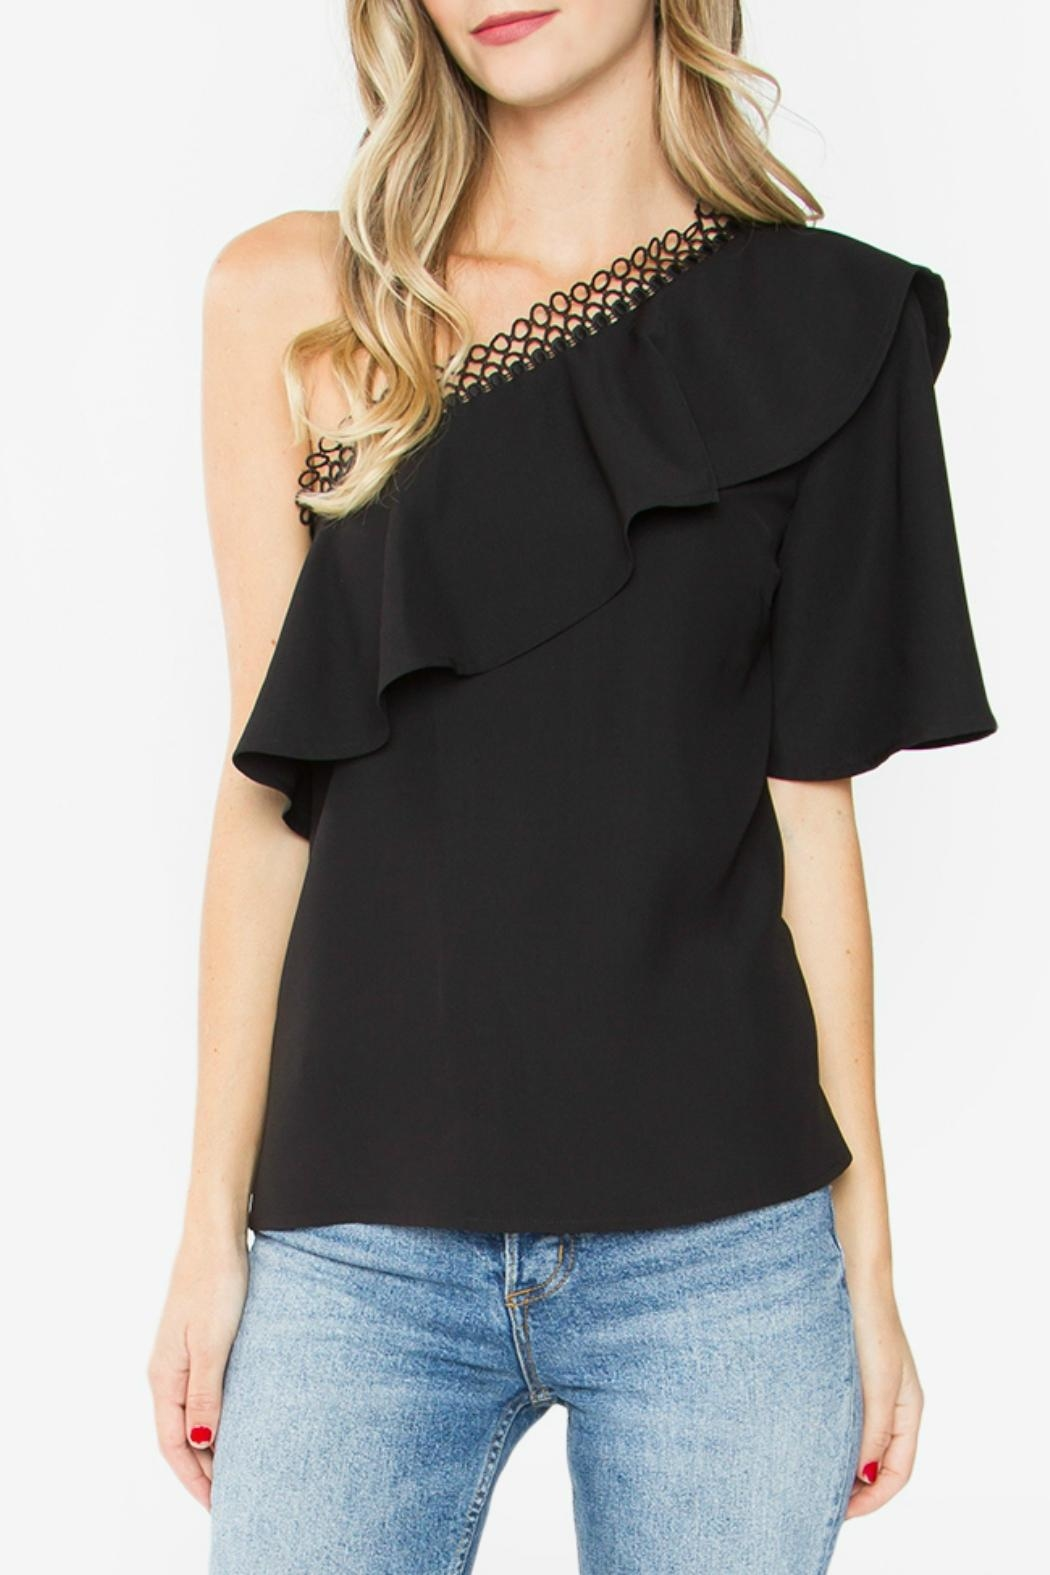 Sugar Lips Black One-Shoulder Top - Main Image